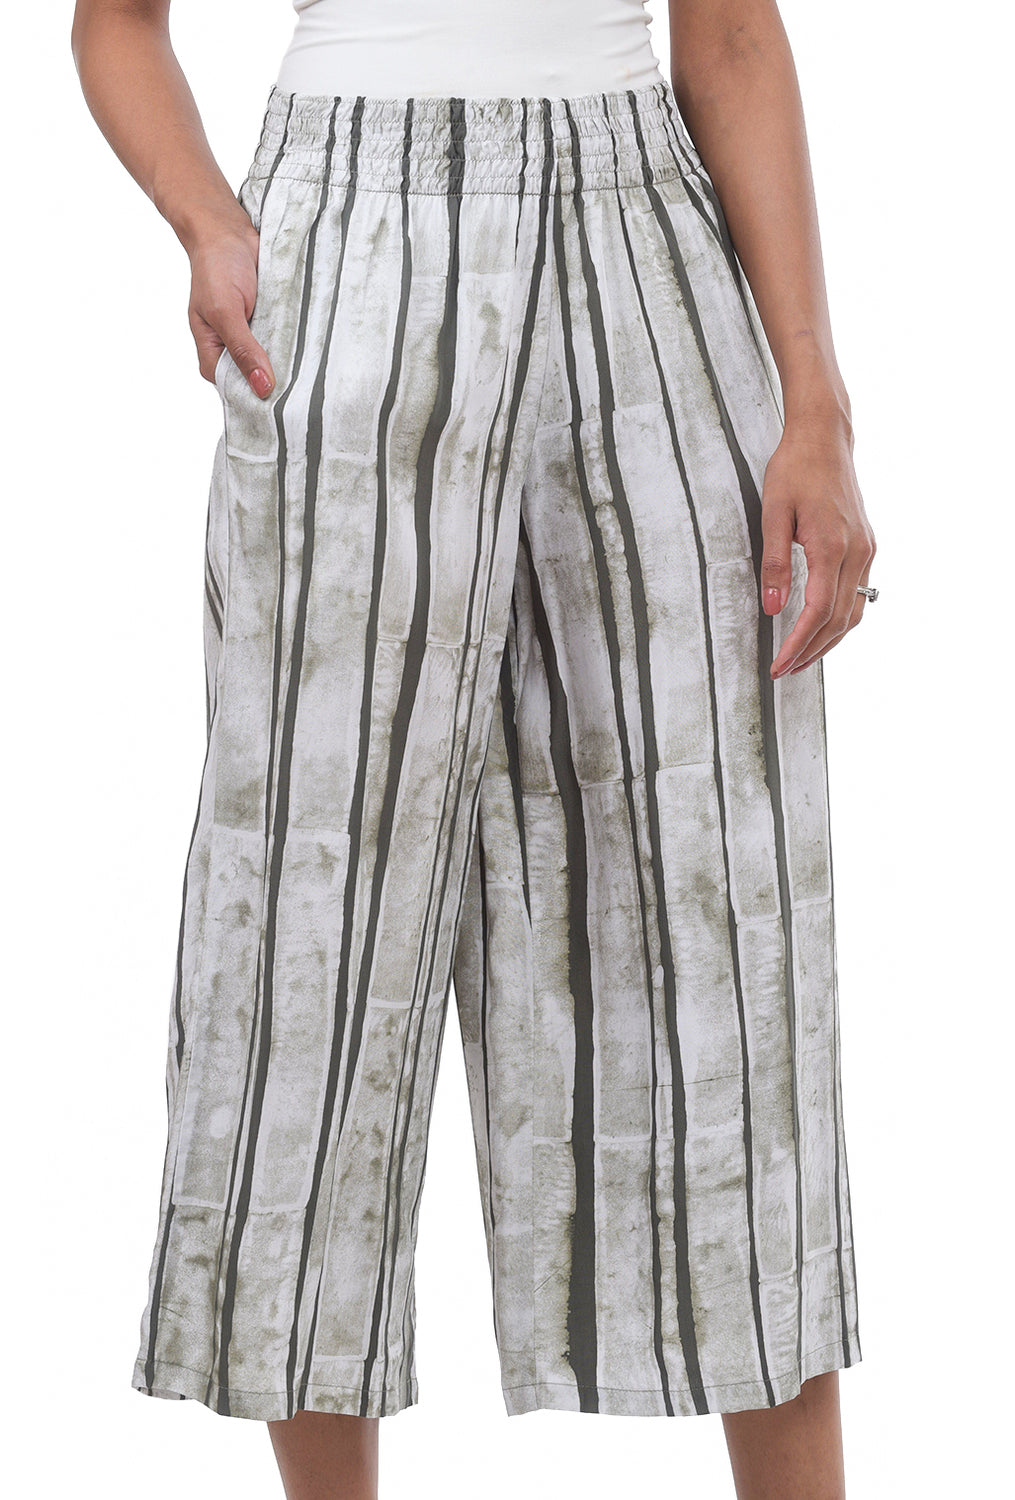 Iguana Stripey Palazzo Pants, Green/Cream